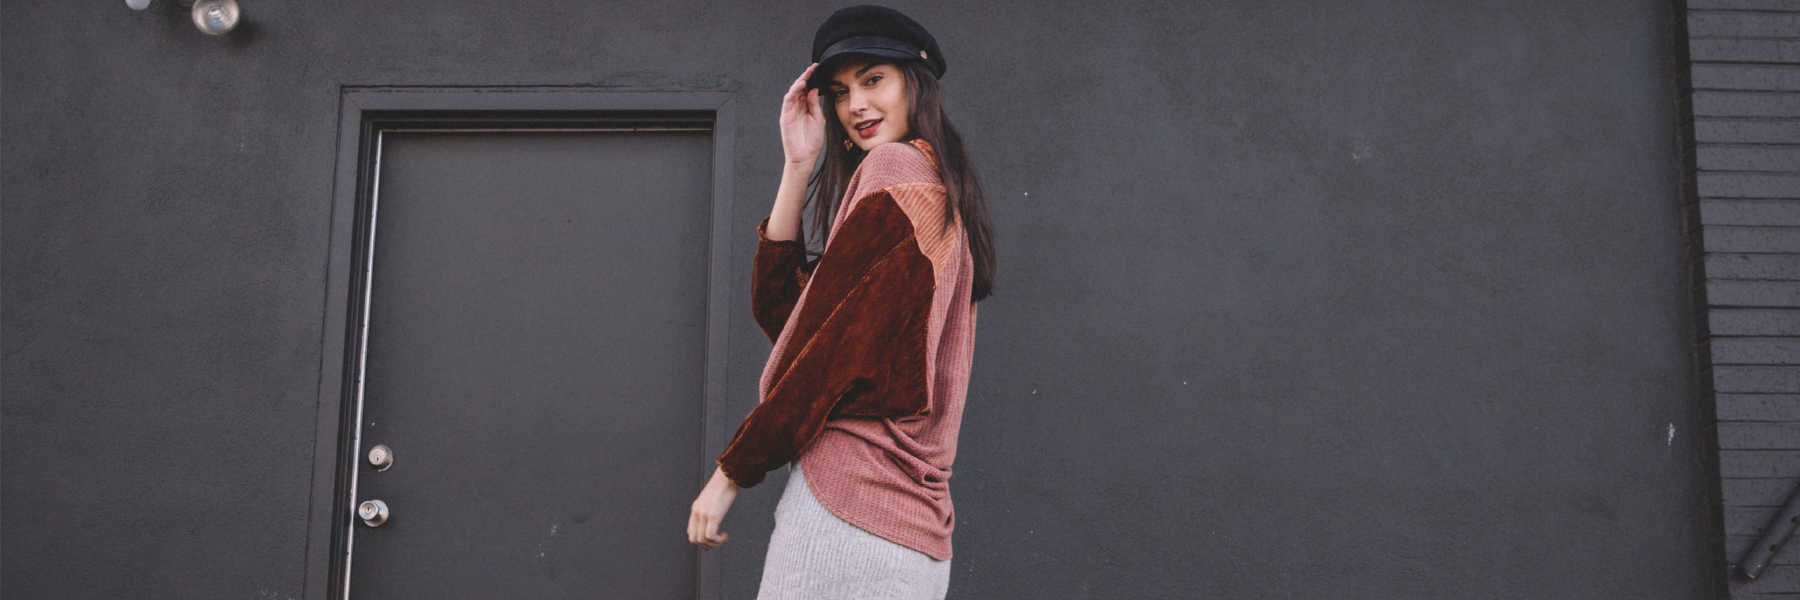 Girl wearing a burgundy top and a black hat in front of a dark grey wall